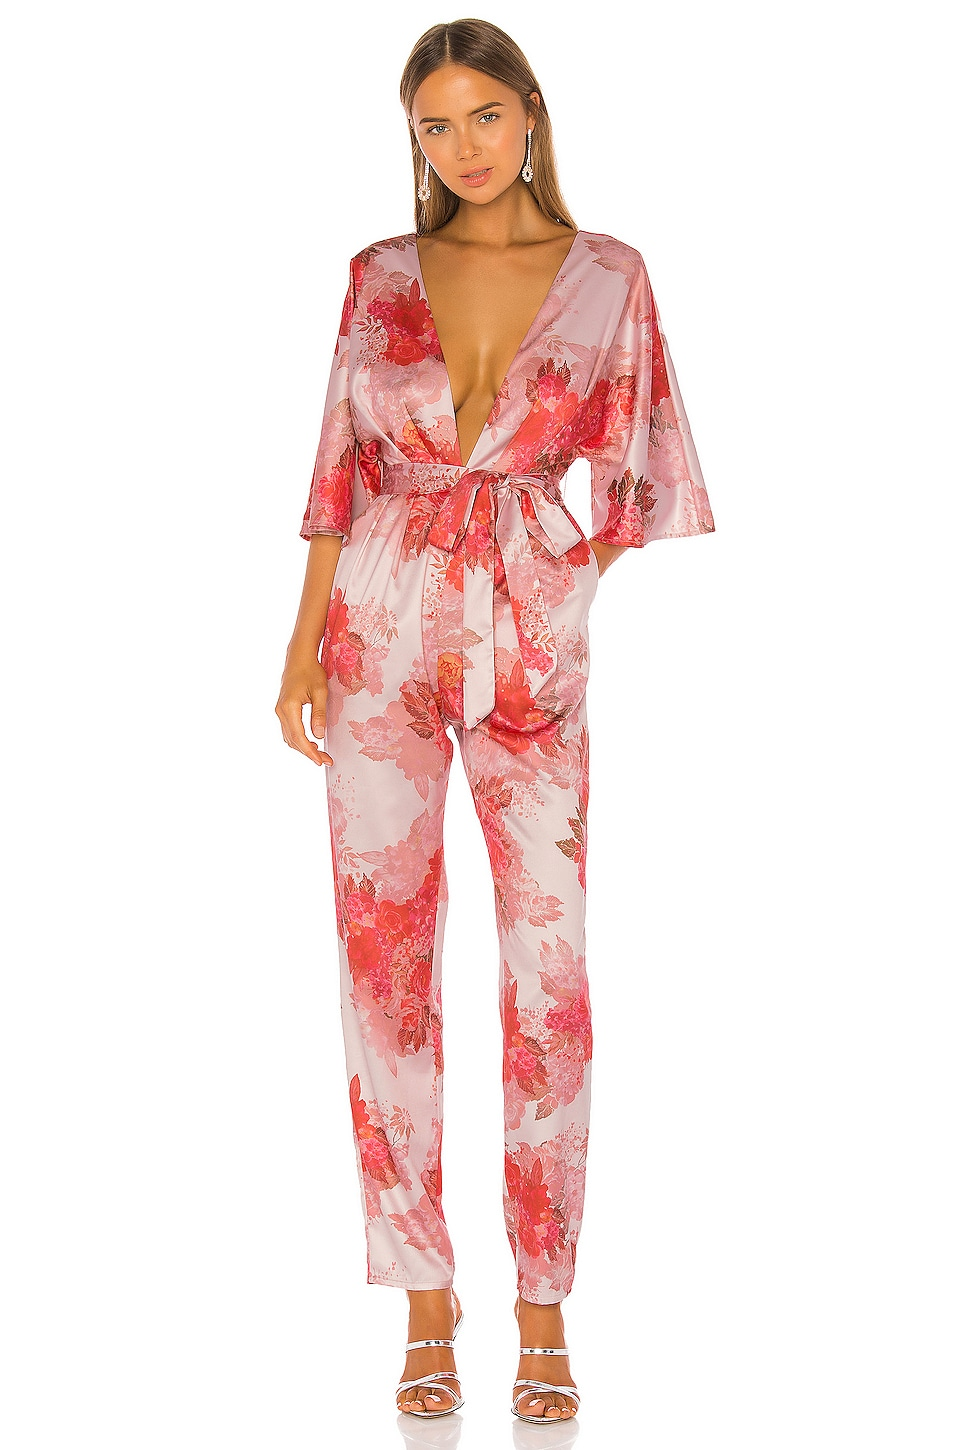 Michael Costello x REVOLVE Fallene Jumpsuit in Rose Floral